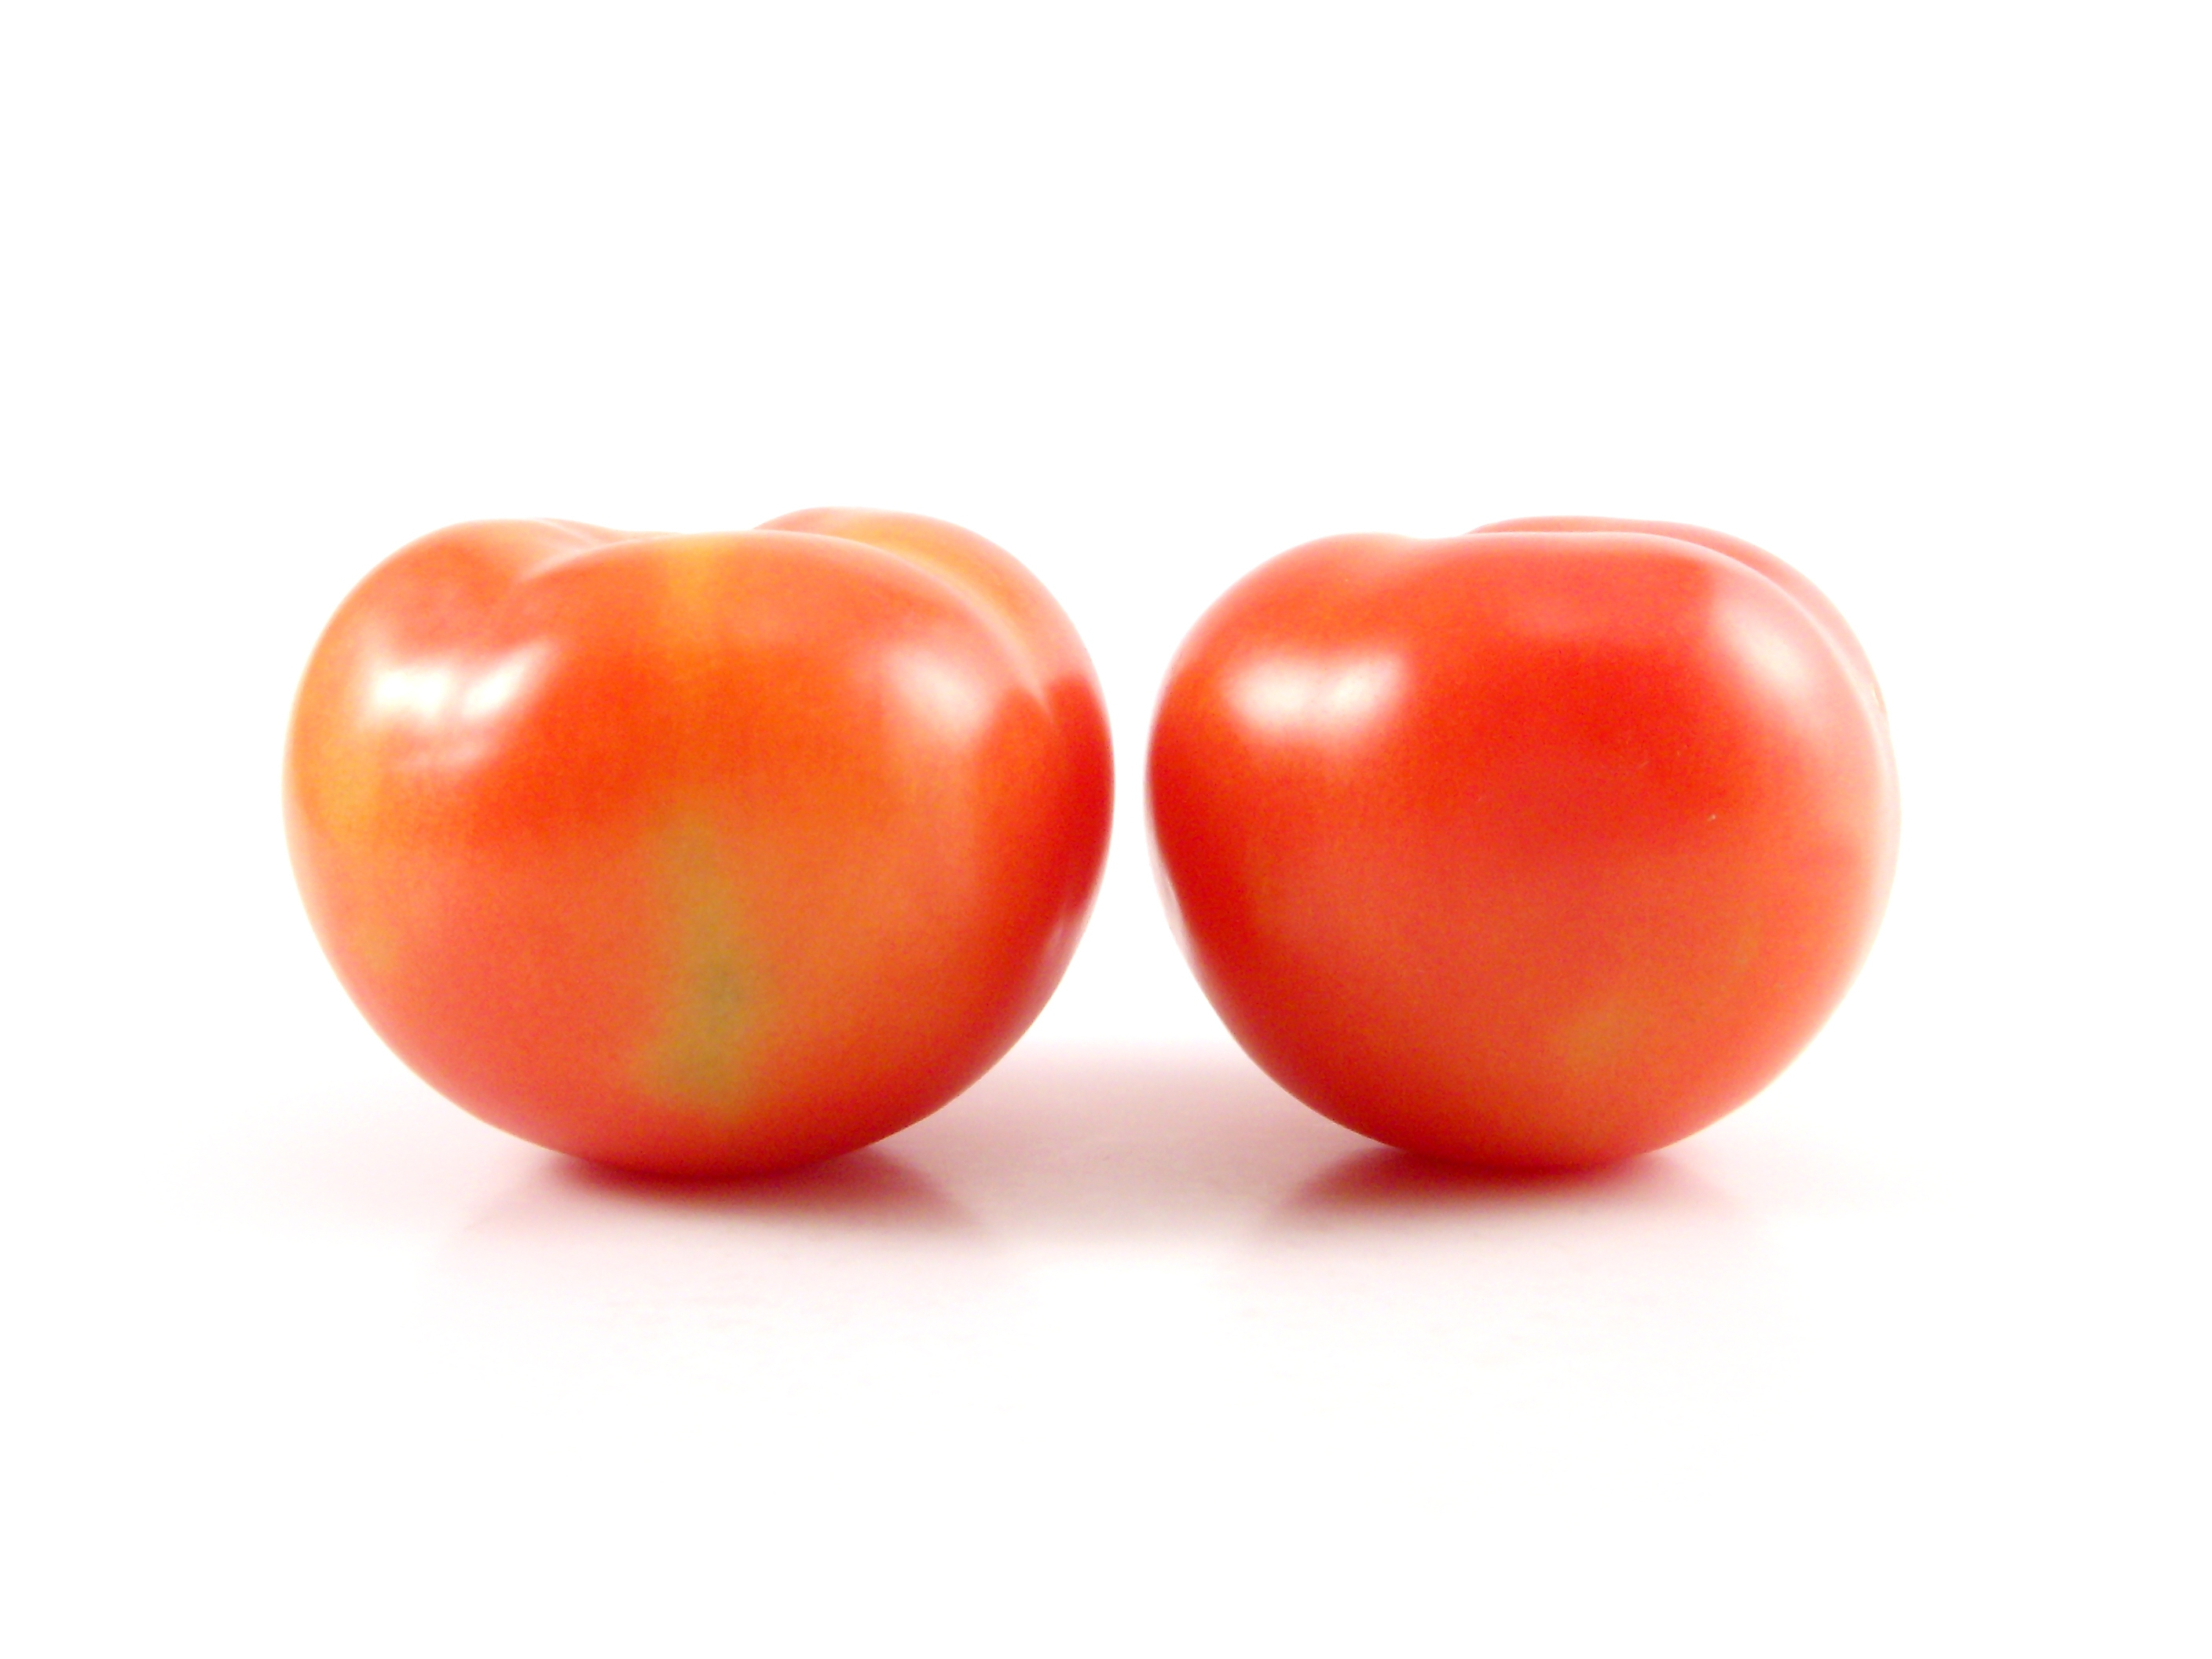 Tomato Download